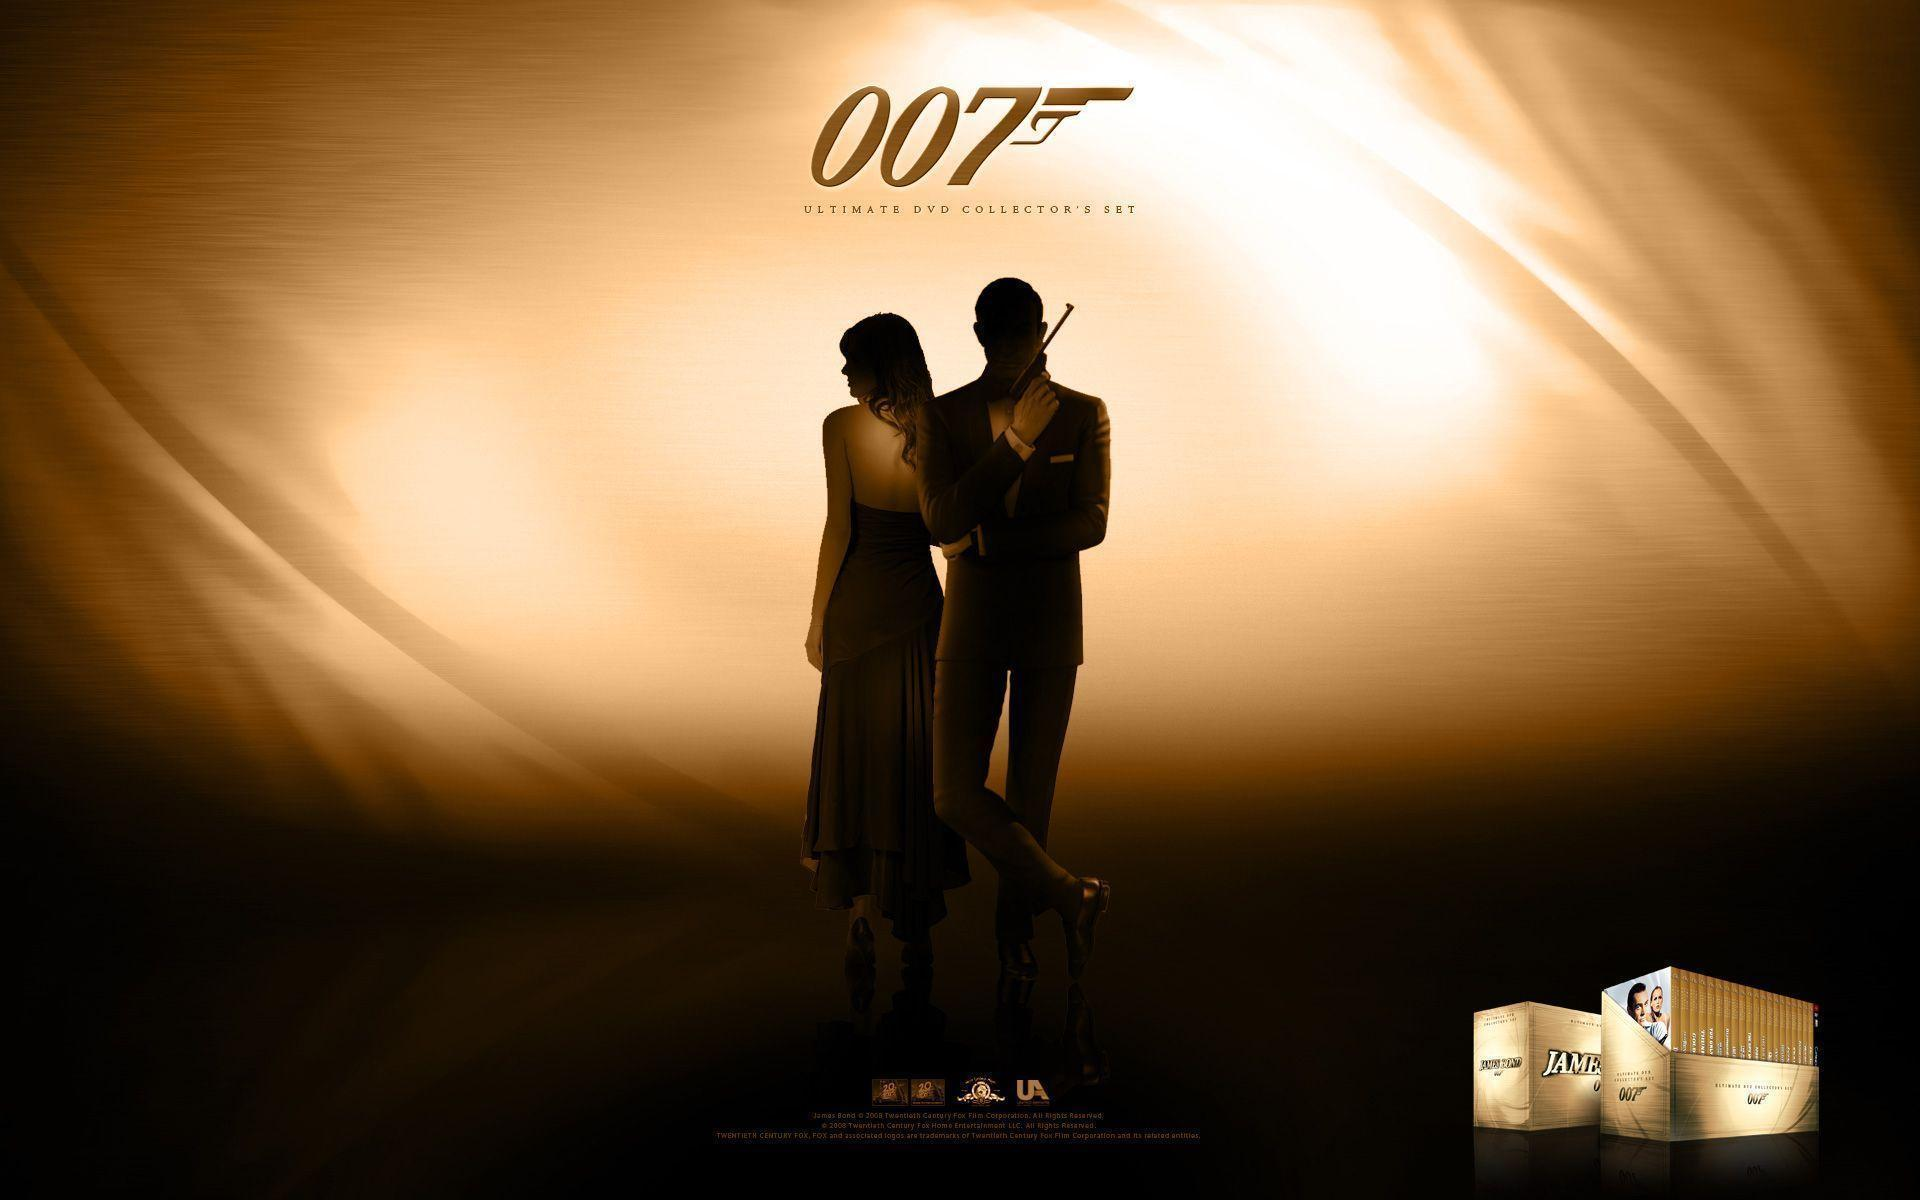 007 James Bond Live Wallpapers Screenshots